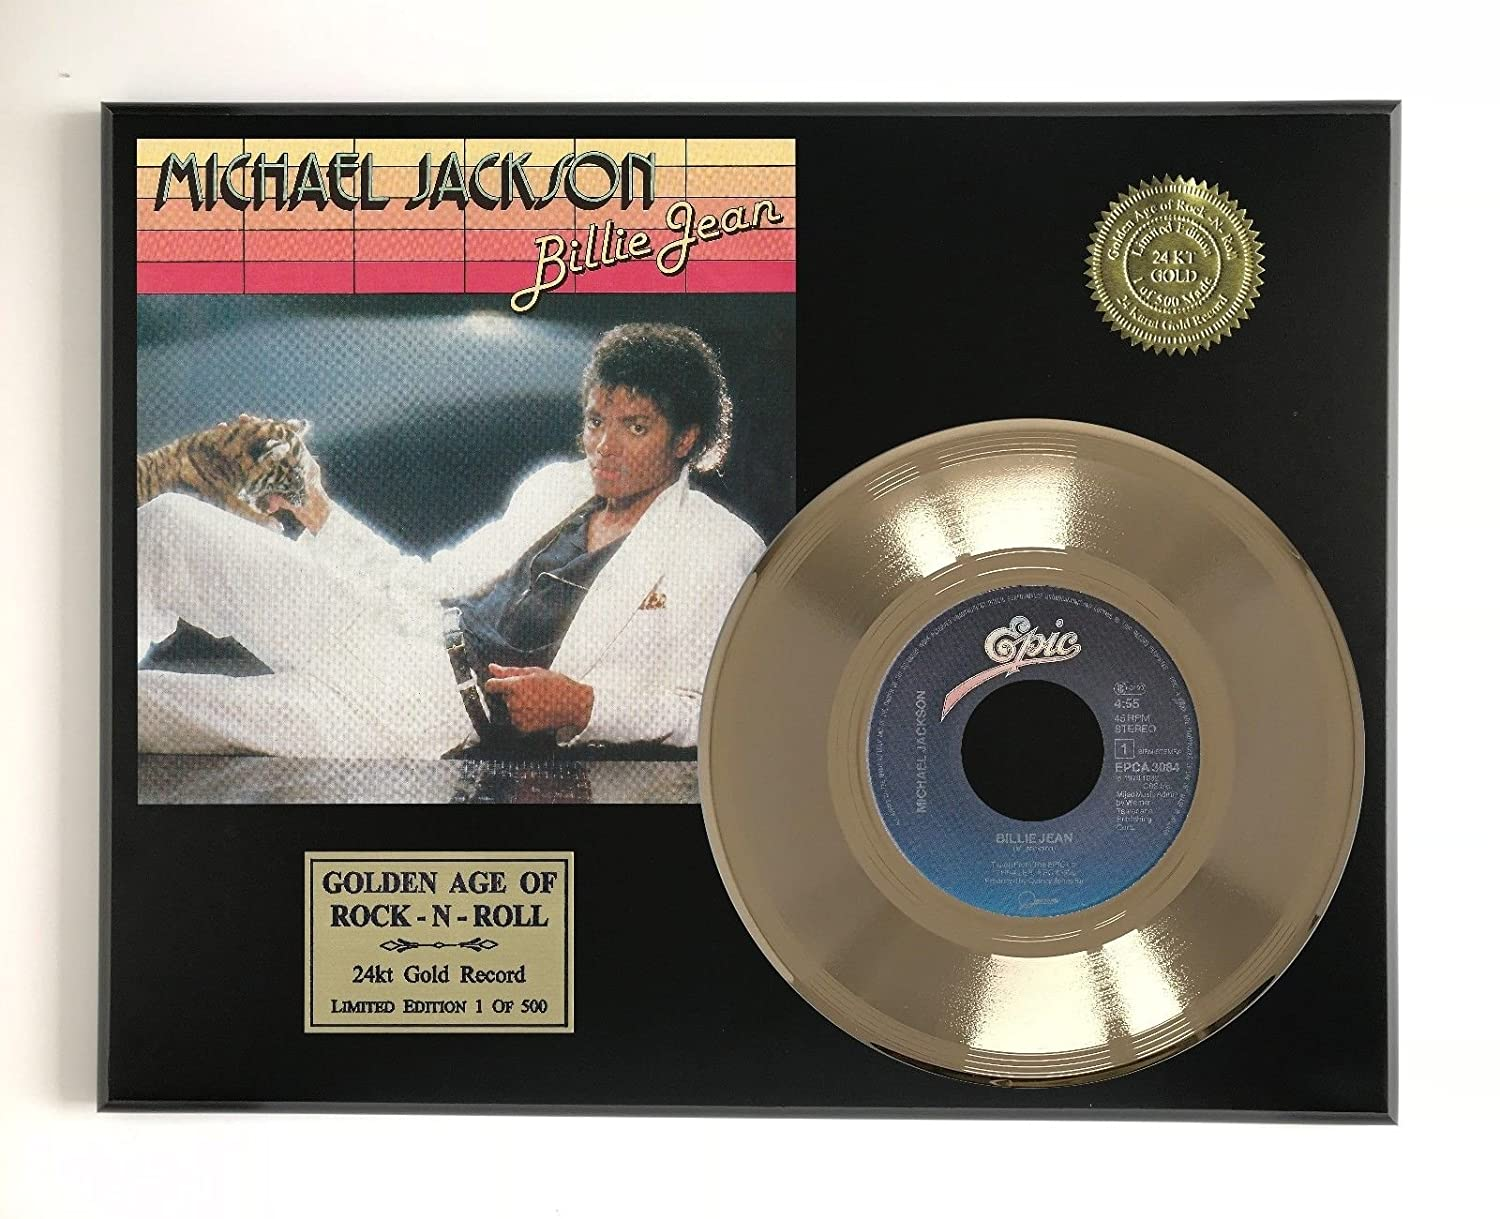 Michael Jackson - Billie Jean Ltd Edition Gold 45 Record Display M4